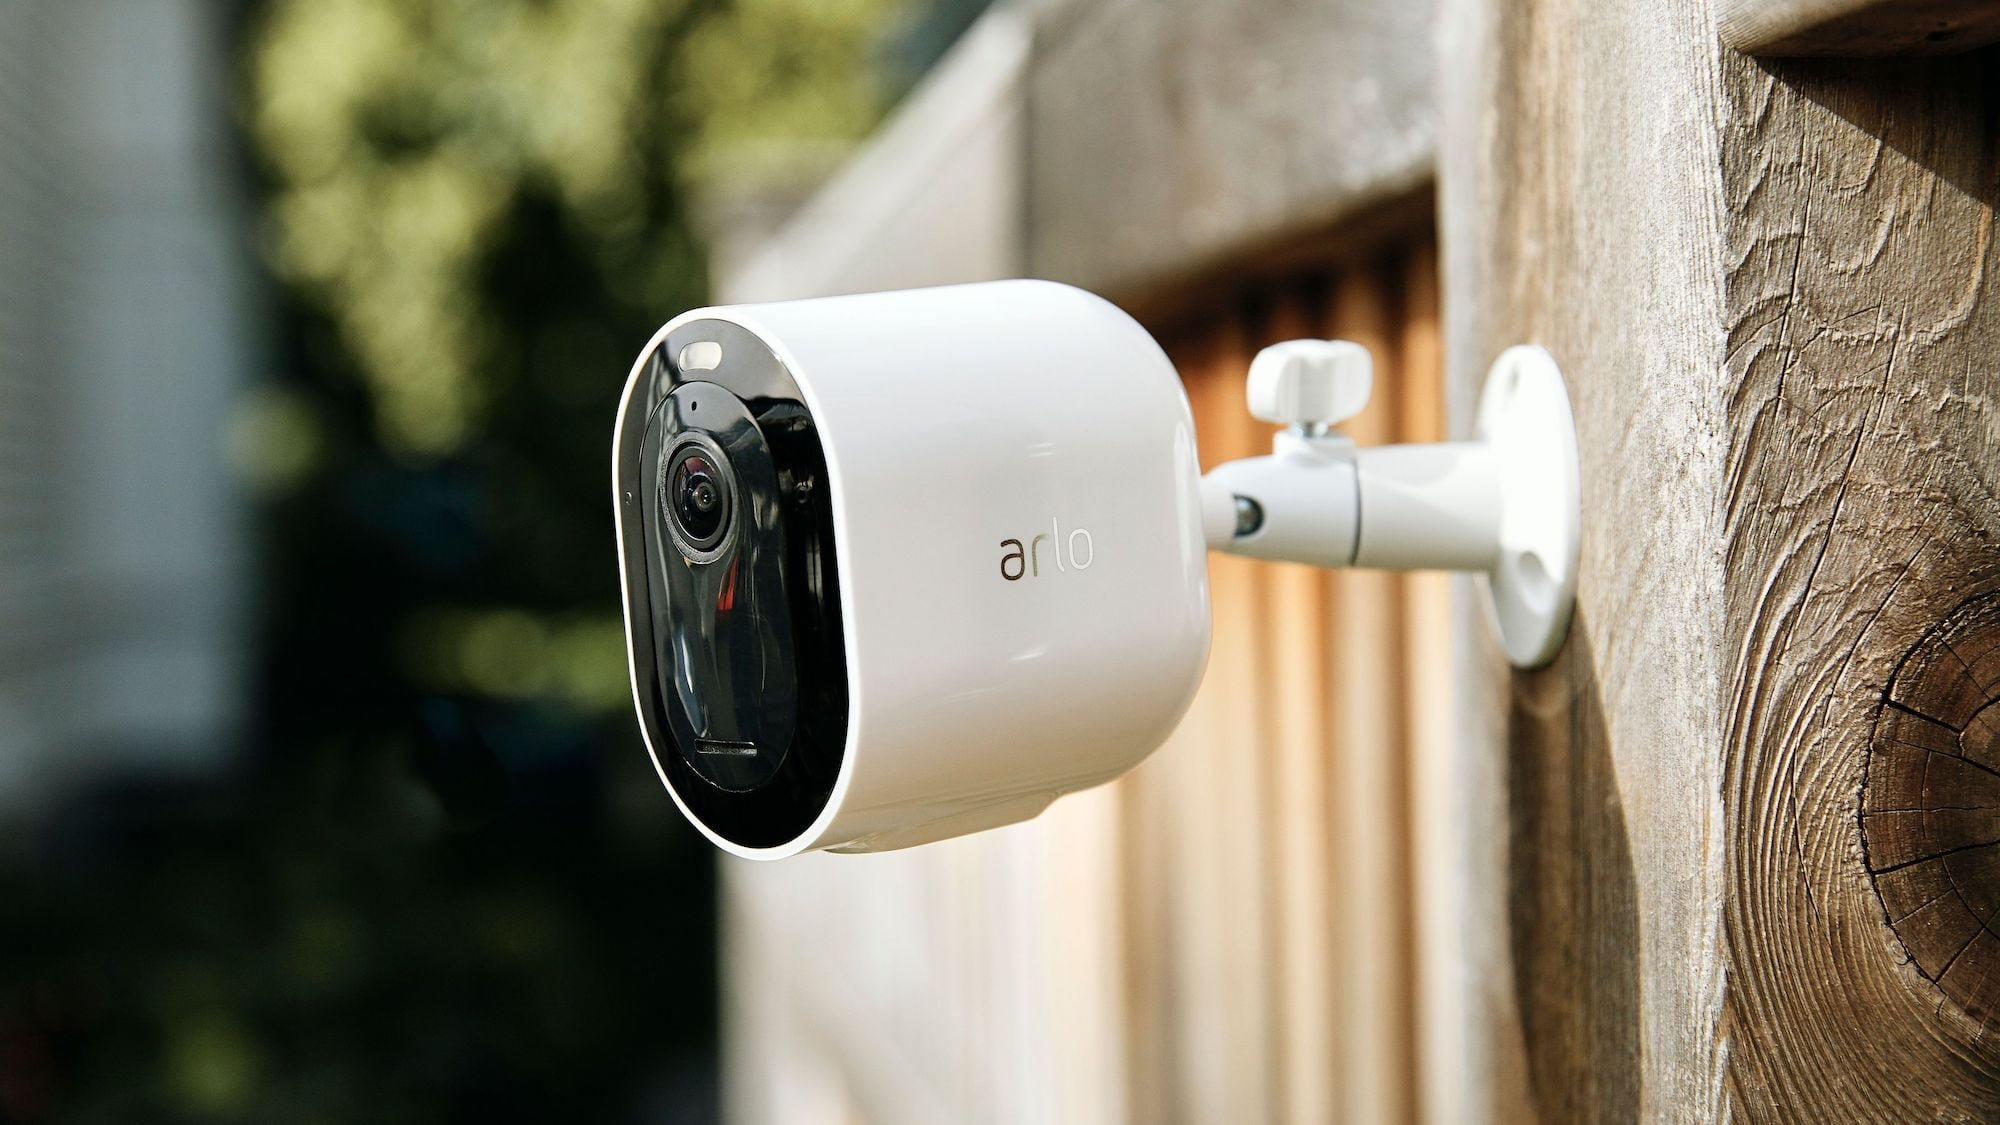 Arlo Pro 3 Wireless Security Camera System installs in just minutes